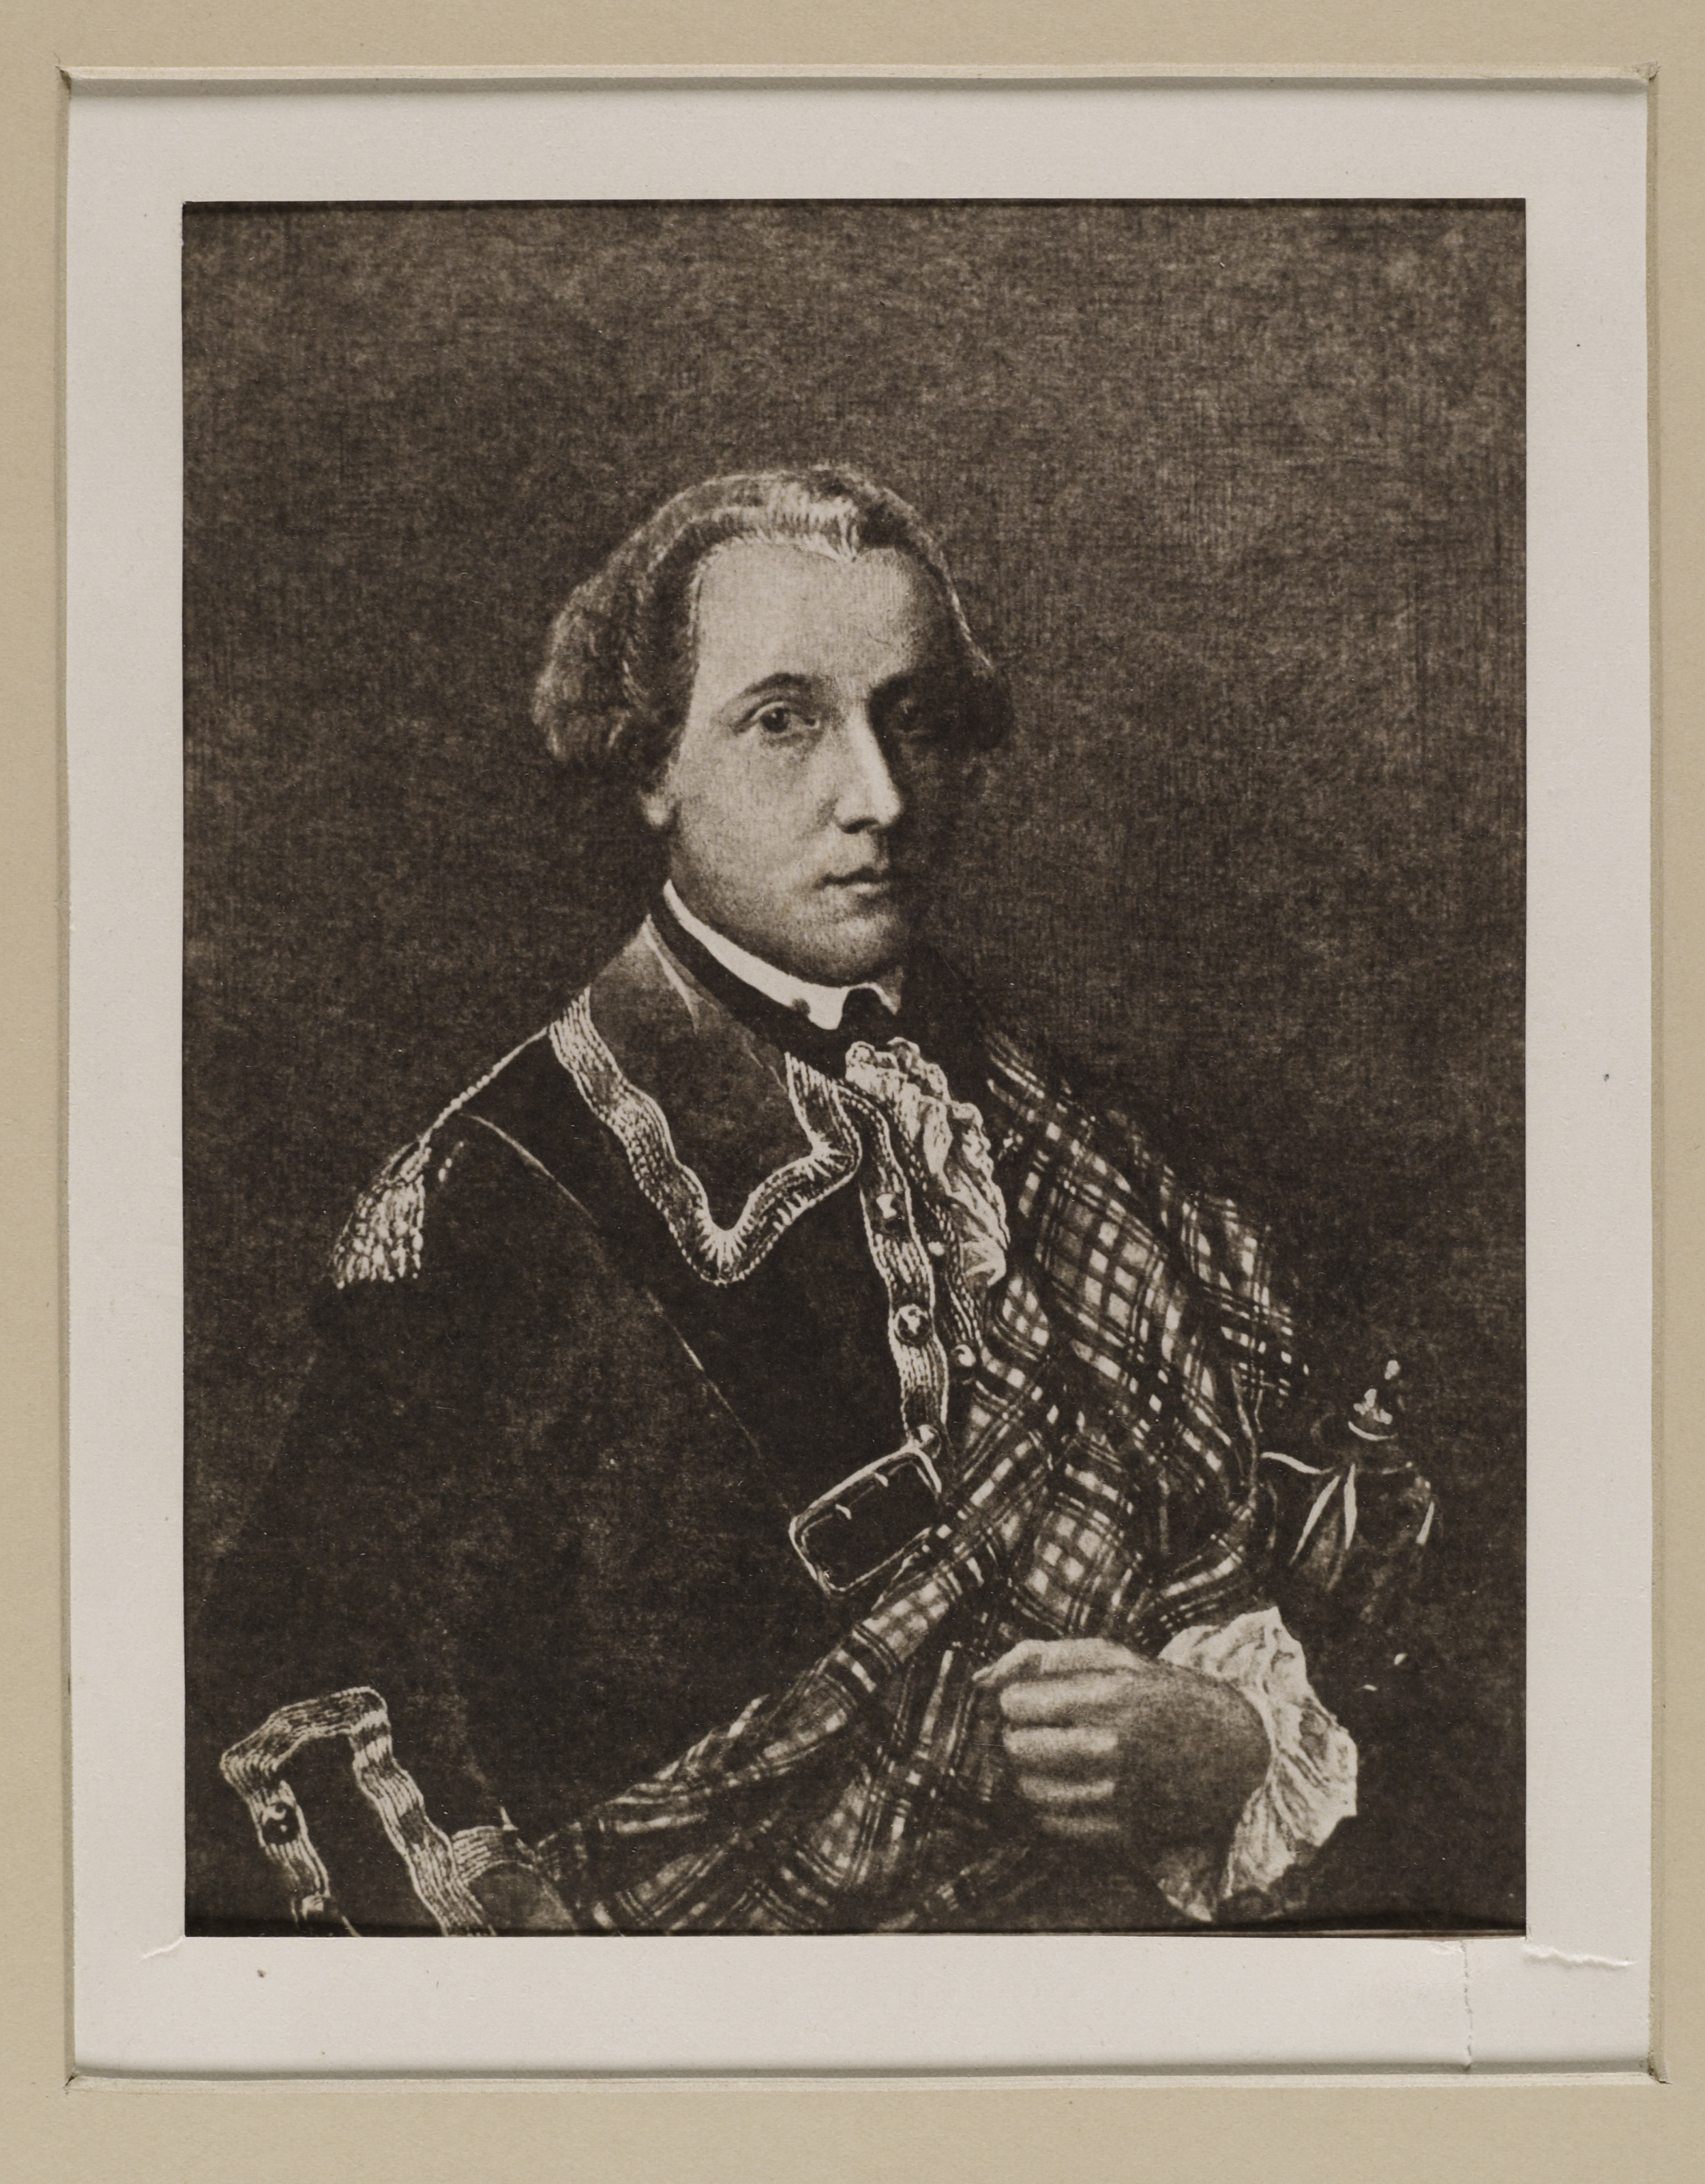 File:Jacobite broadside - Portrait of Donald CAMERON, the Gentle Lochiel ( 1695-